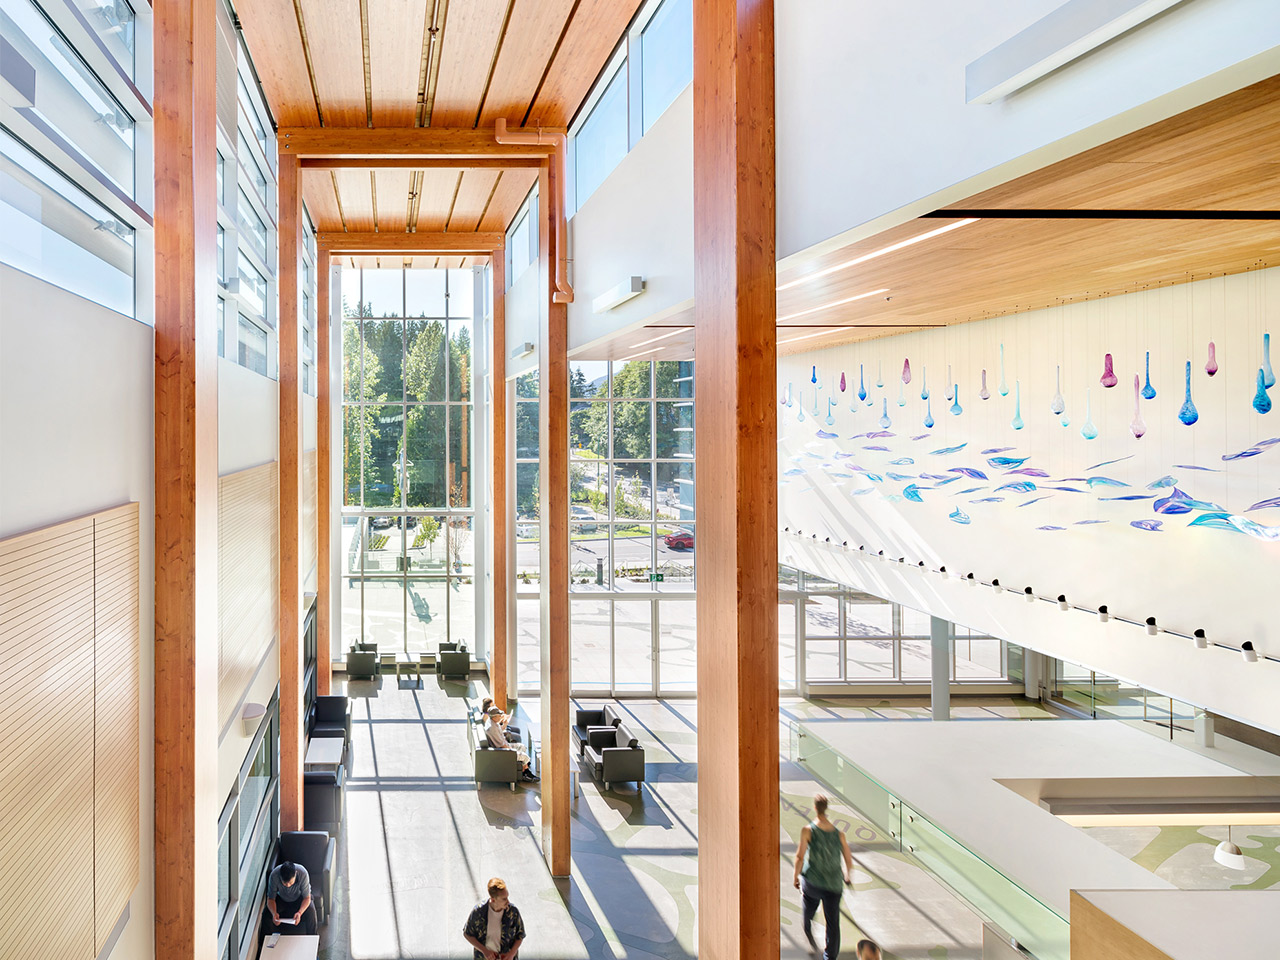 Delbrook Community Recreation Centre<abbr>North Vancouver, B.C. Canada<br>Douglas fir glulam columns, beams, purlins, planks and I-joists</abbr>